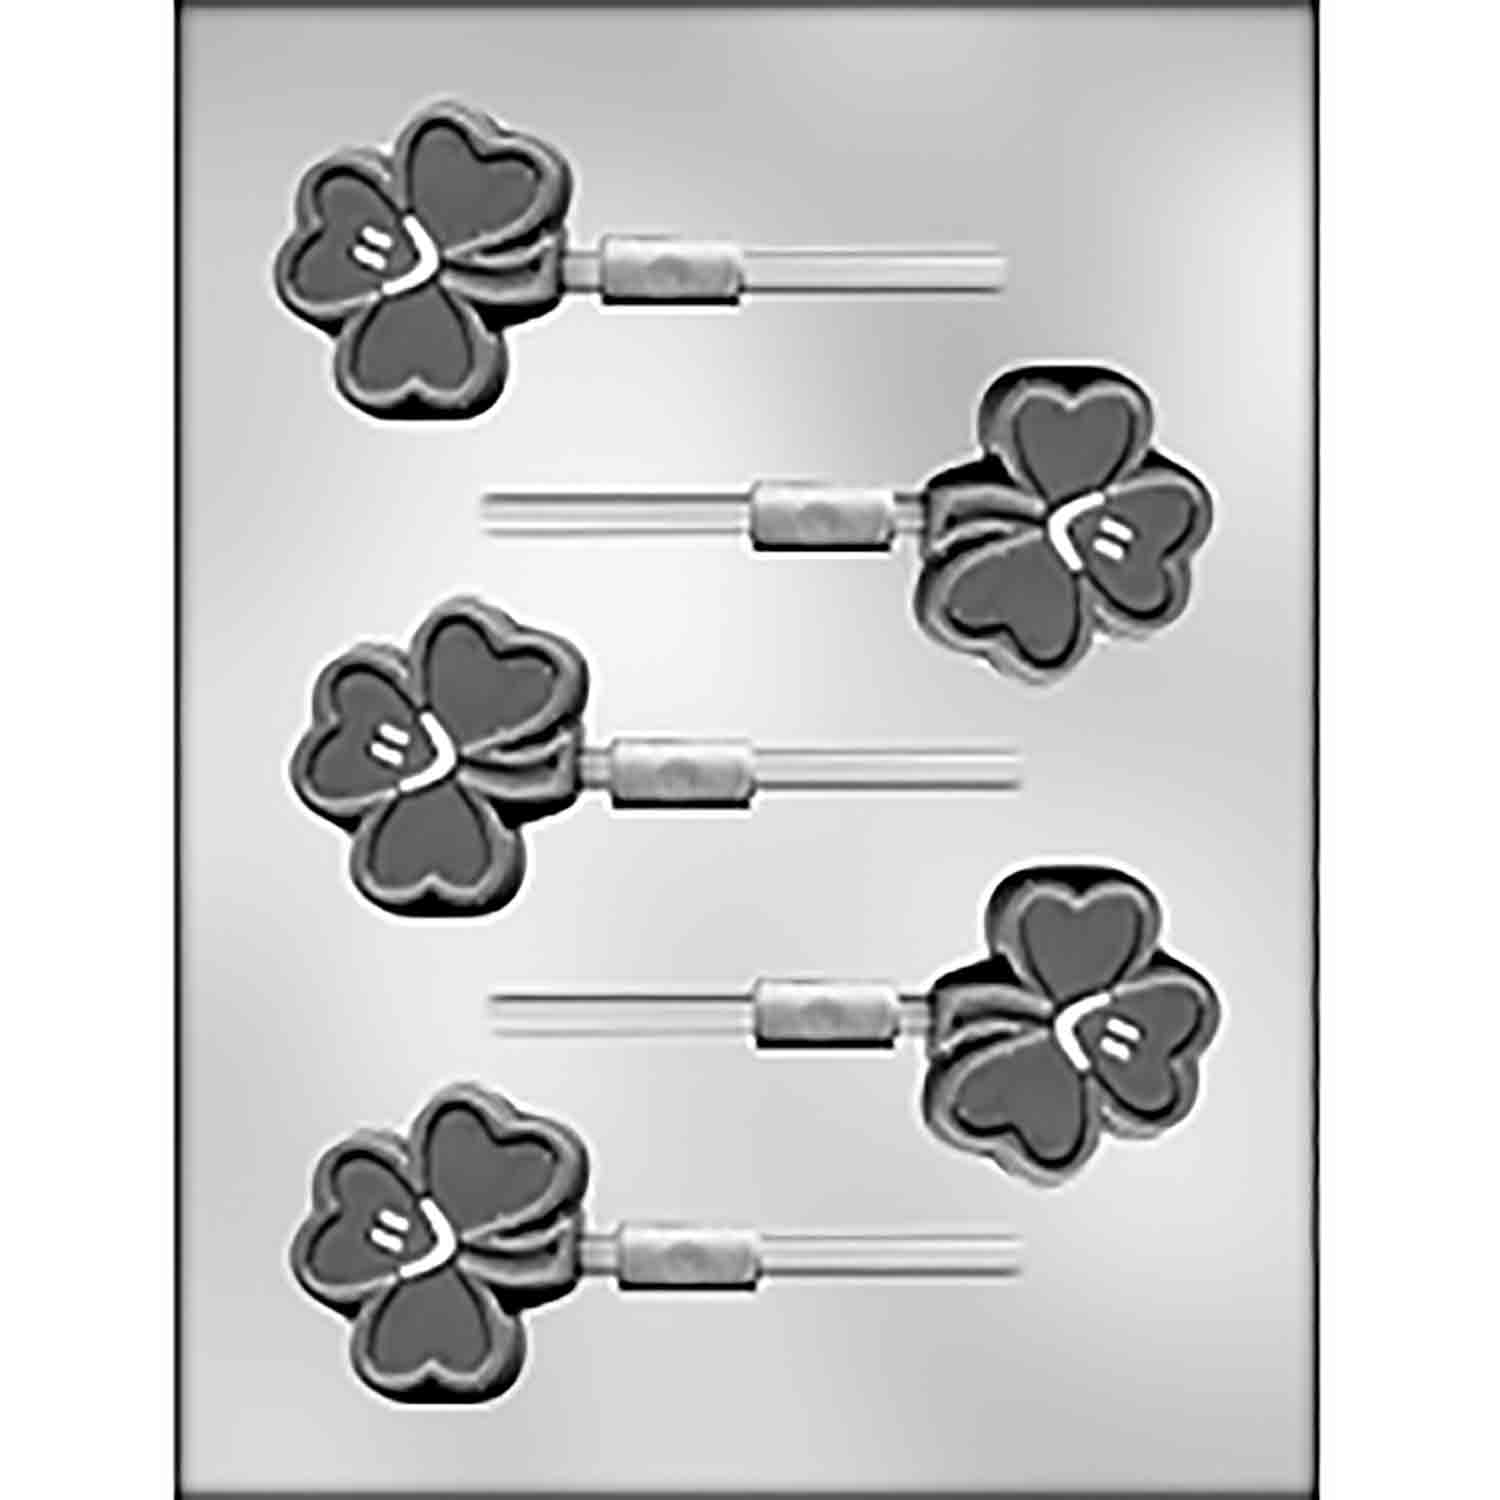 Smiley Shamrock Sucker Chocolate Candy Mold